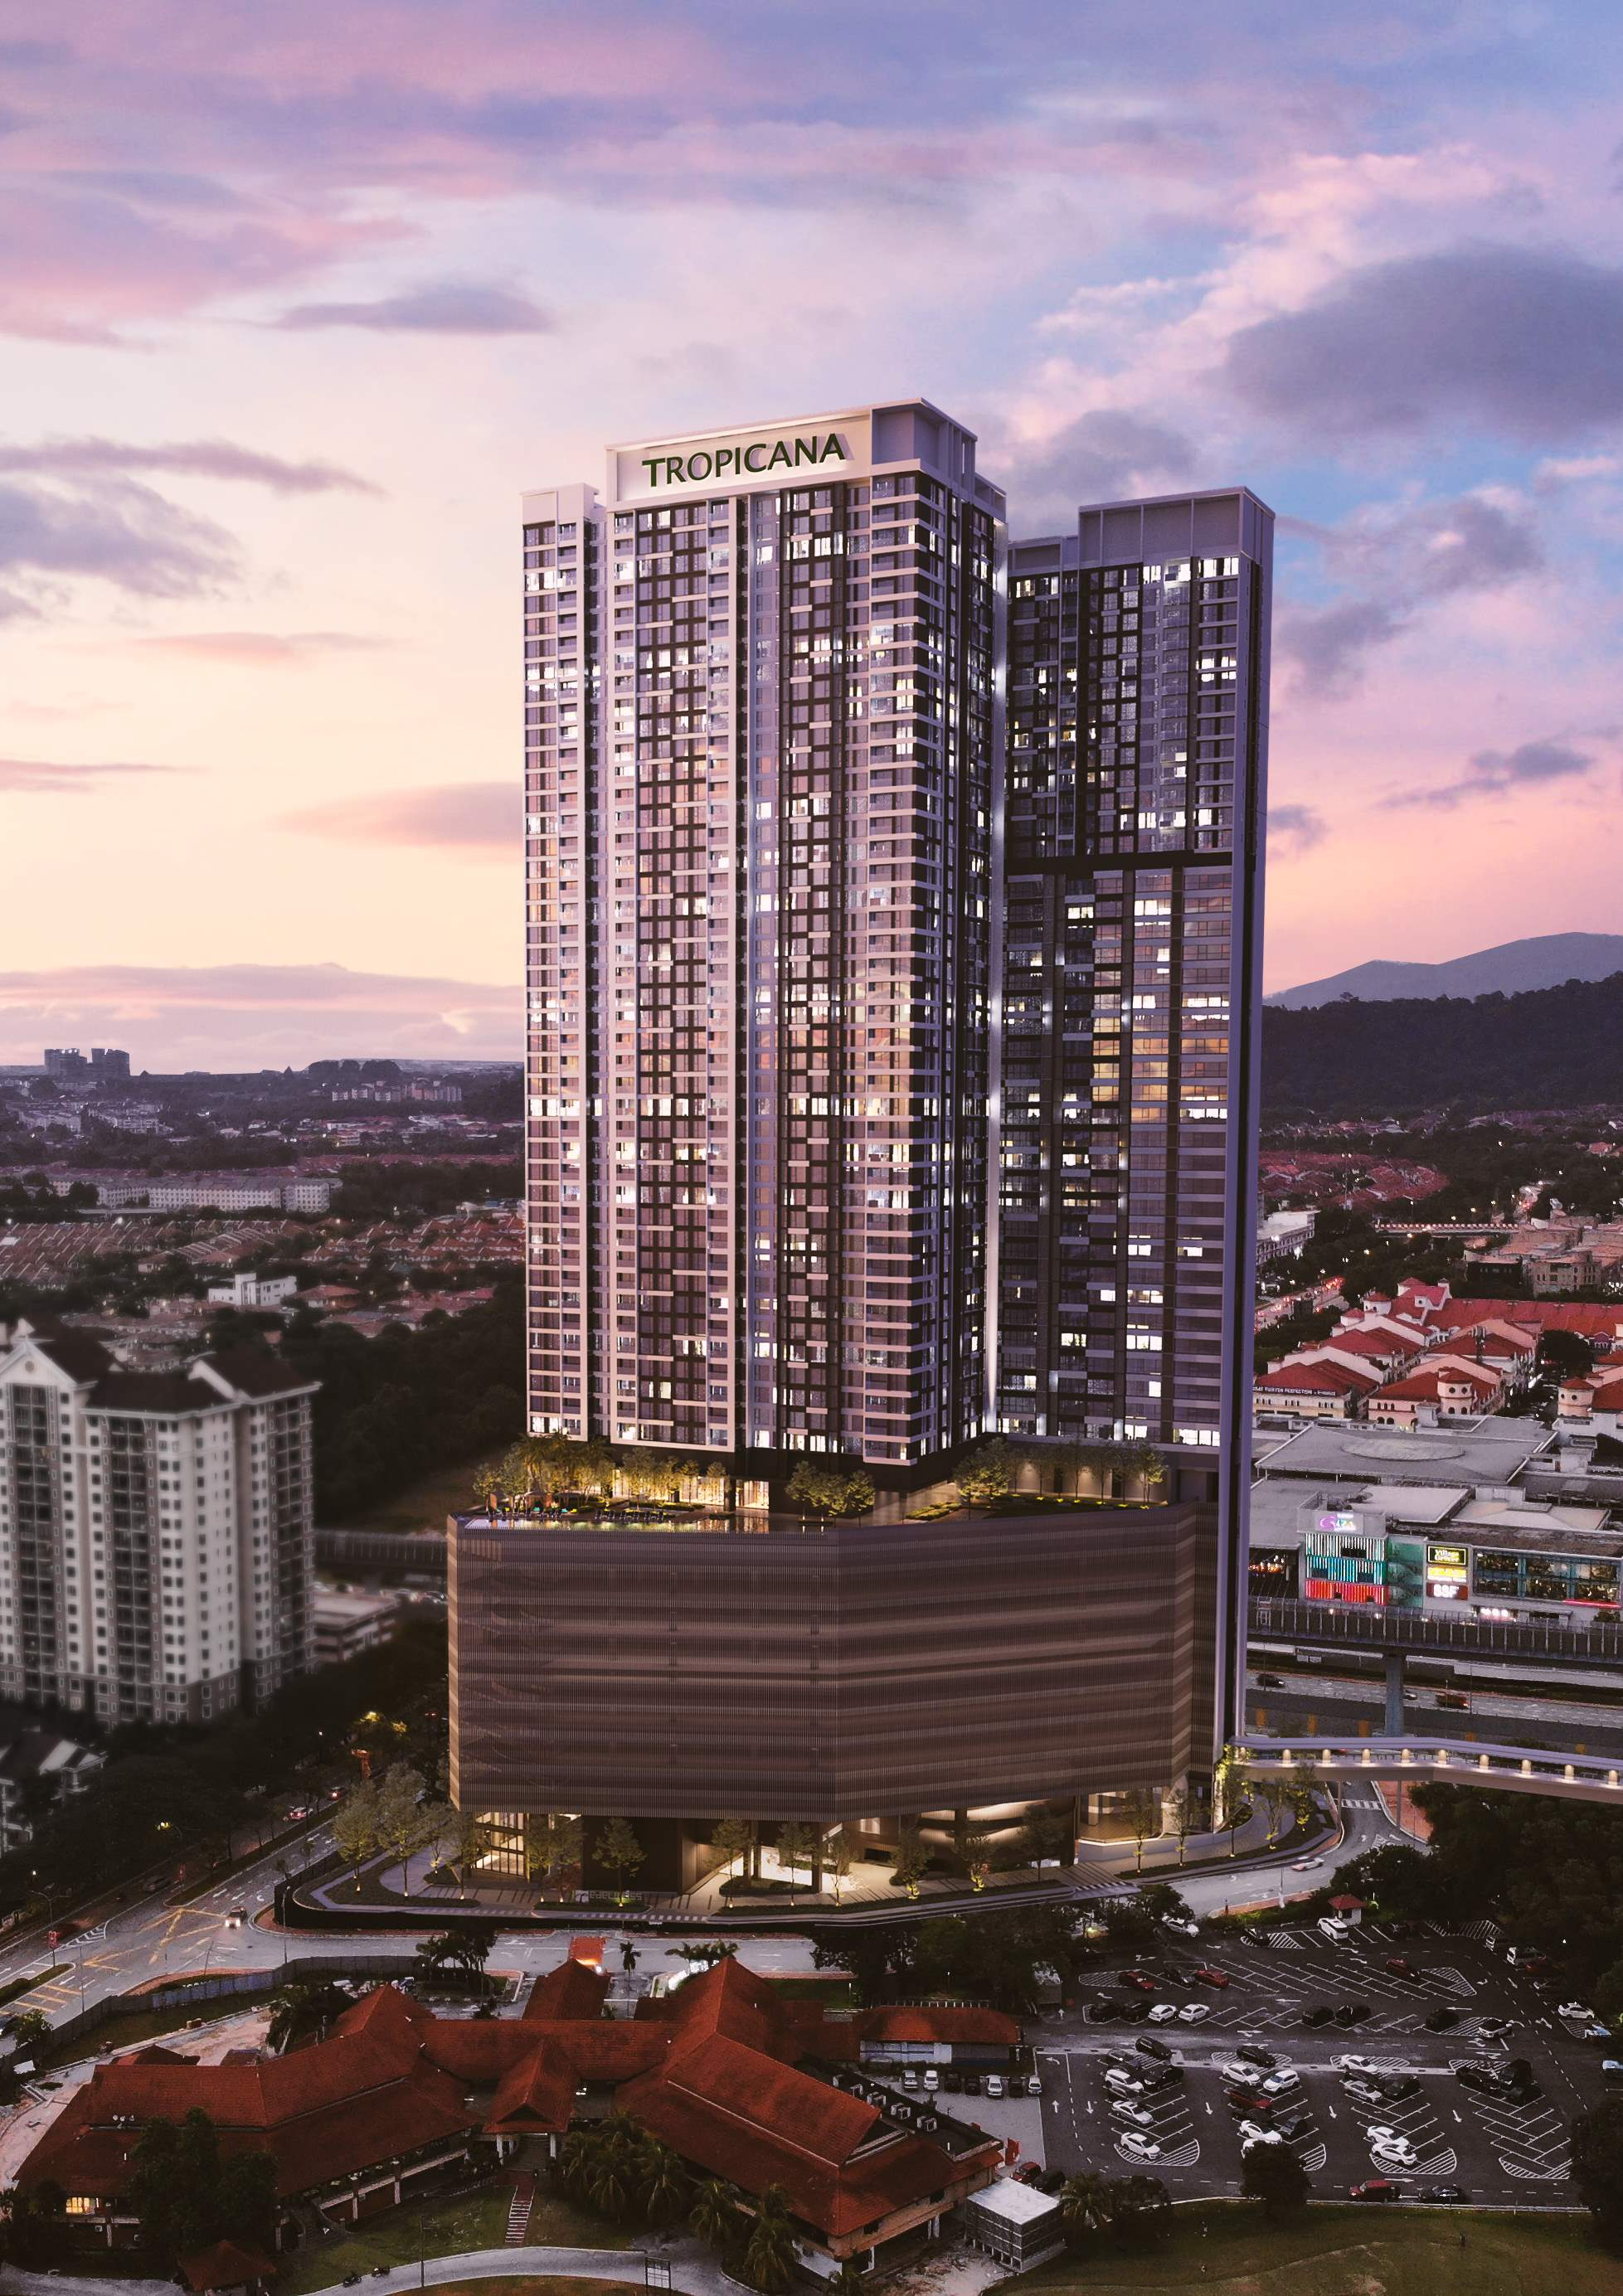 Edelweiss-SOFO-Serviced-Residences-the-fifth-and-final-tower-of-Tropicana-Gardens-development